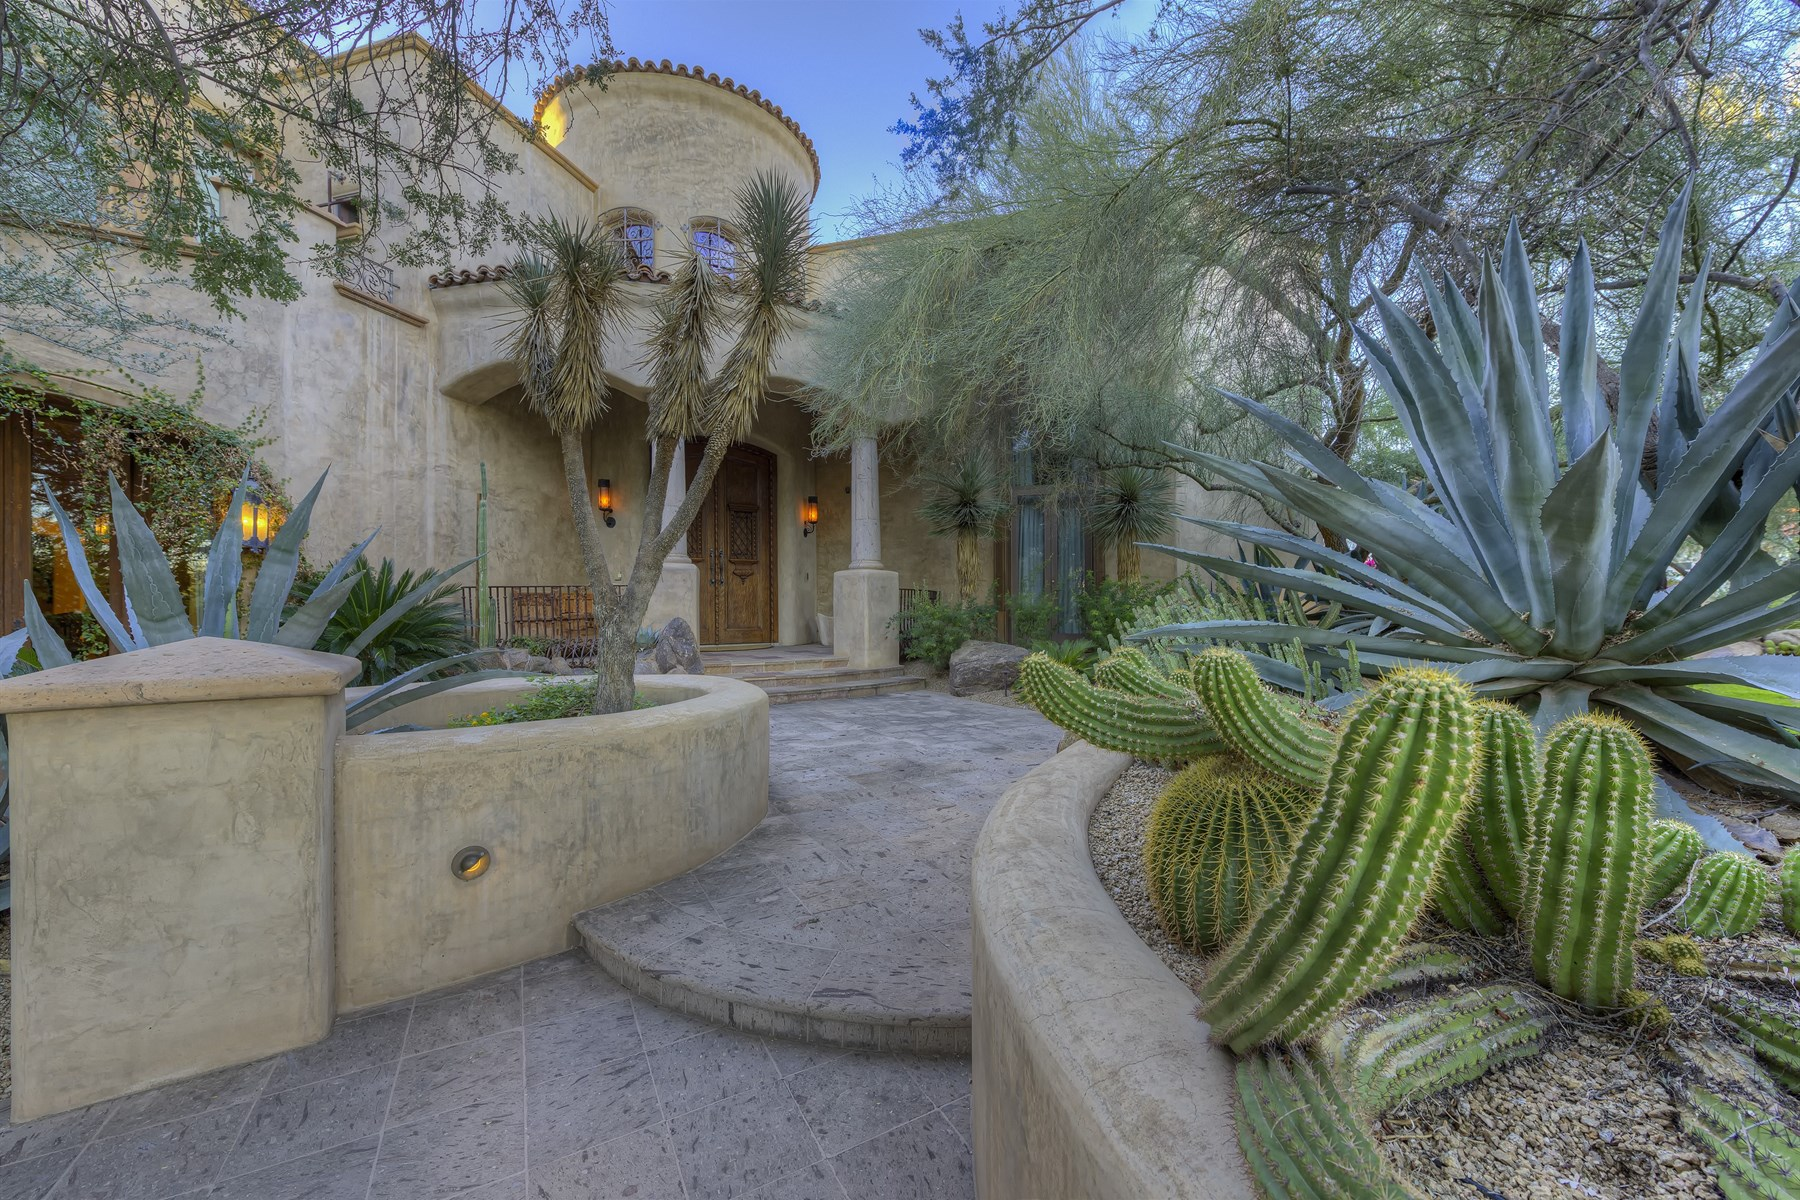 Single Family Home for Sale at Impeccable David Dick Mediterranean Architecture Design 12234 S Honah Lee Ct Phoenix, Arizona, 85044 United States